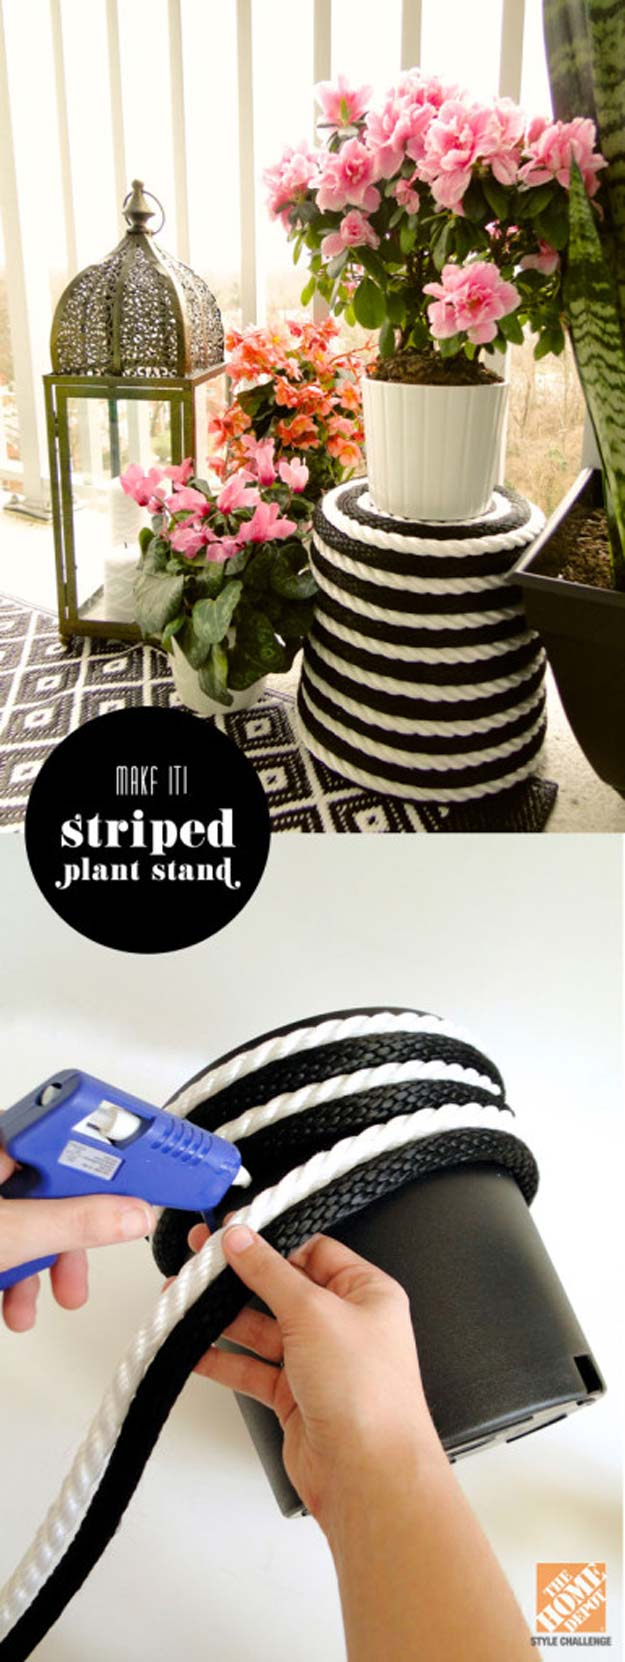 DIY Room Decor Ideas in Black and White - Stripe Plant Stand - Creative Home Decor and Room Accessories - Cheap and Easy Projects and Crafts for Wall Art, Bedding, Pillows, Rugs and Lighting - Fun Ideas and Projects for Teens, Apartments, Adutls and Teenagers